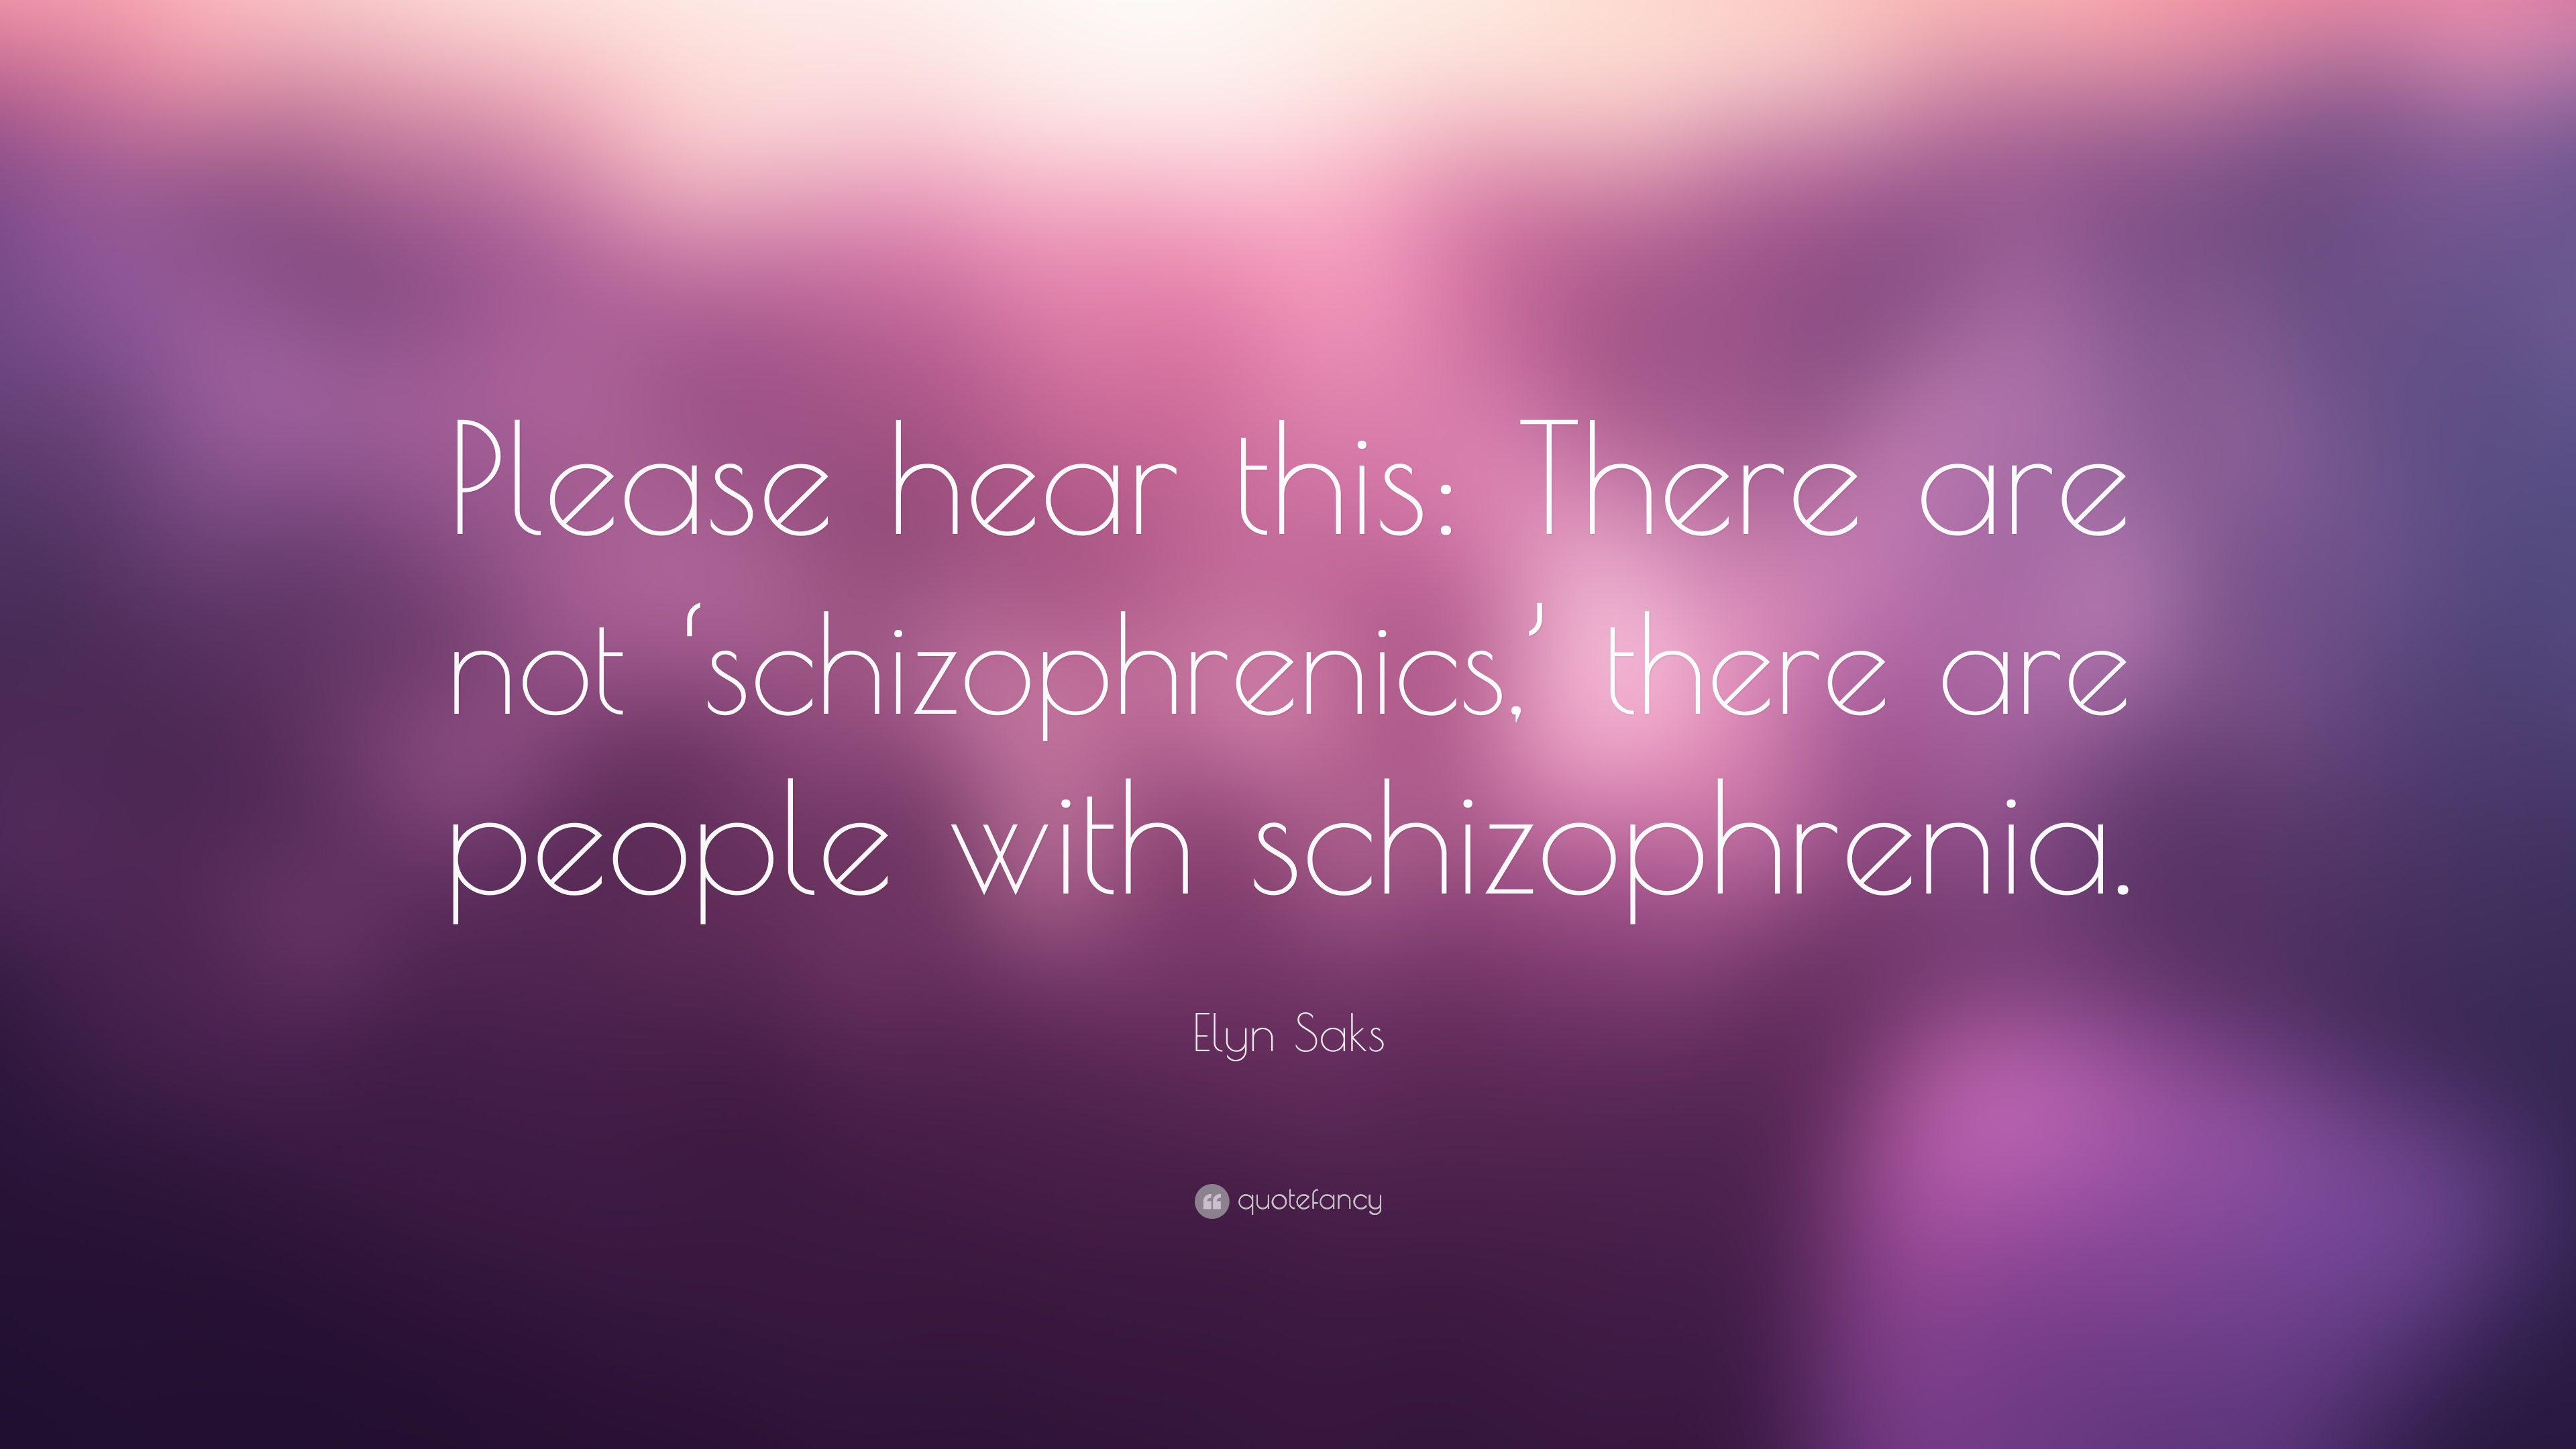 Elyn Saks Quote Please Hear This There Are Not Schizophrenics There Are People With Schizophrenia 7 Wallpapers Quotefancy